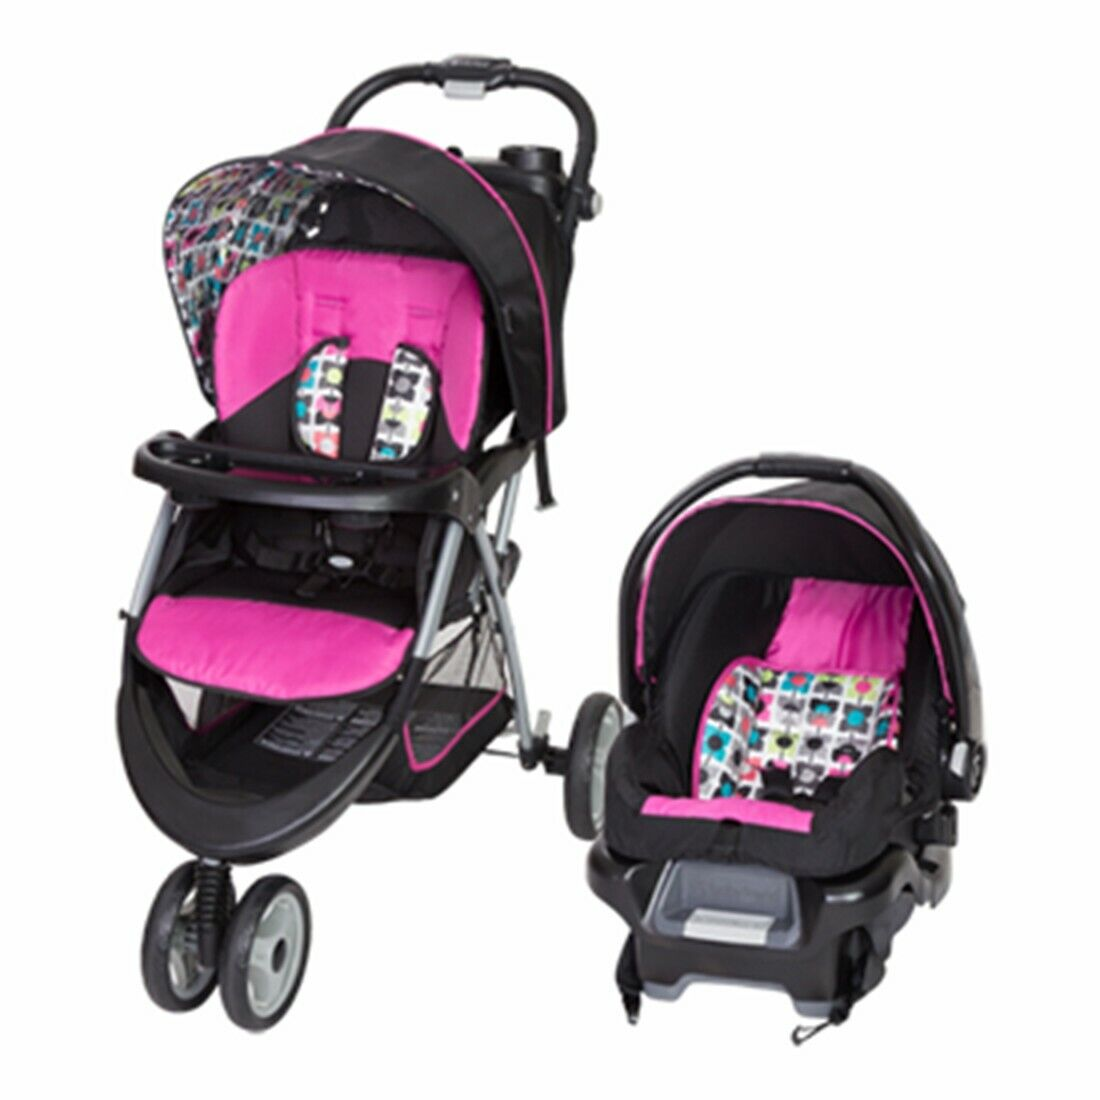 baby stroller travel system and infant car